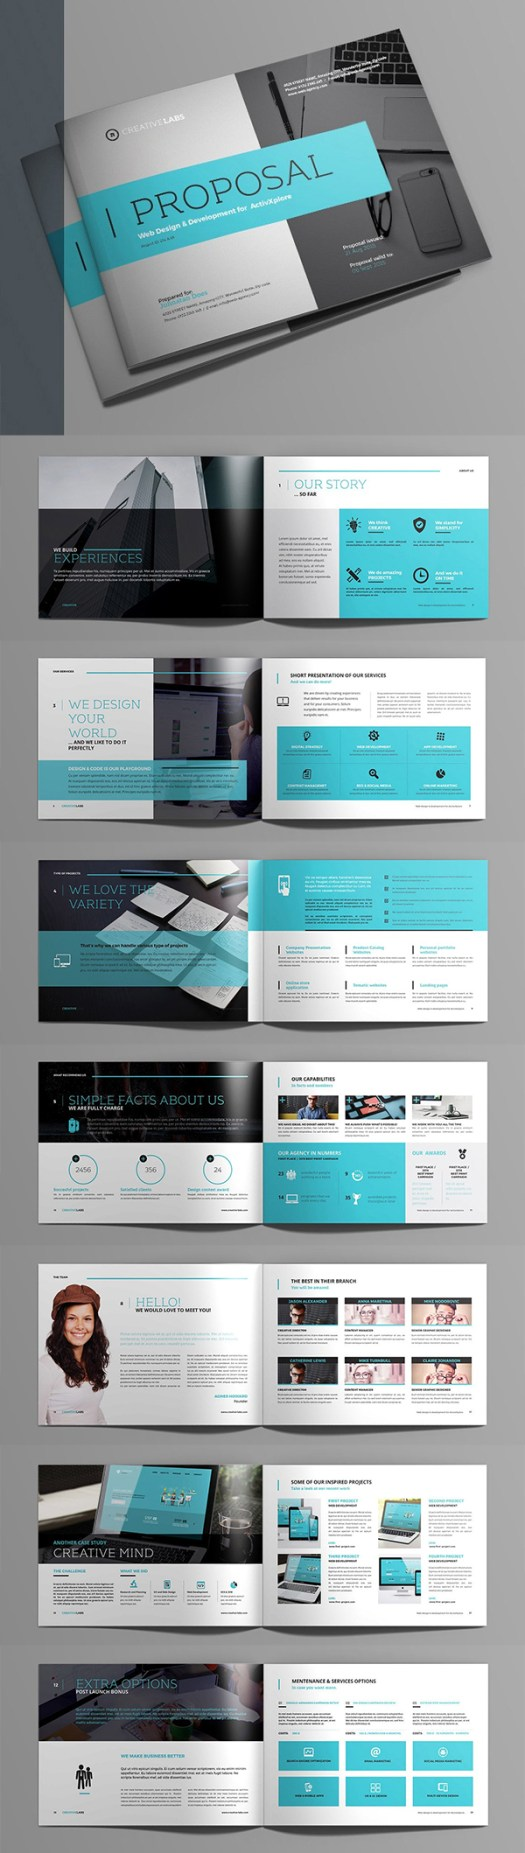 20 new creative business proposal templates mixed sign professional business proposal templates design 11 flashek Images